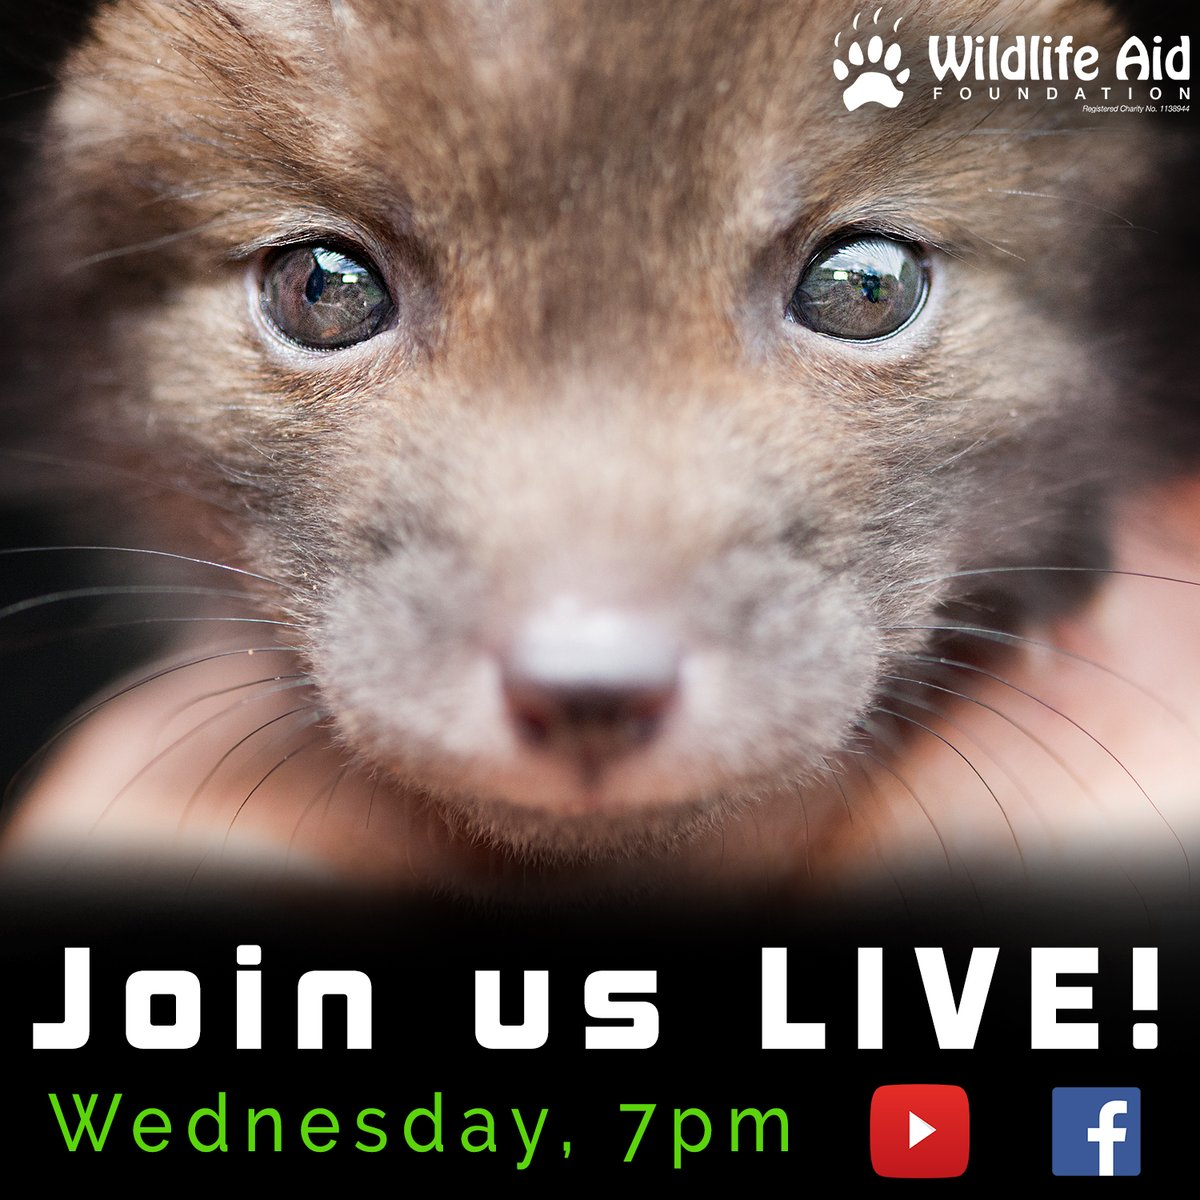 Join us LIVE tomorrow (Wednesday 13th) at 7pm UK time for our first #livestream of the year!  If you have any questions for the team, make sure you join us and we will answer all we can!  We hope to see you on #YouTube or #Facebook tomorrow evening! :)